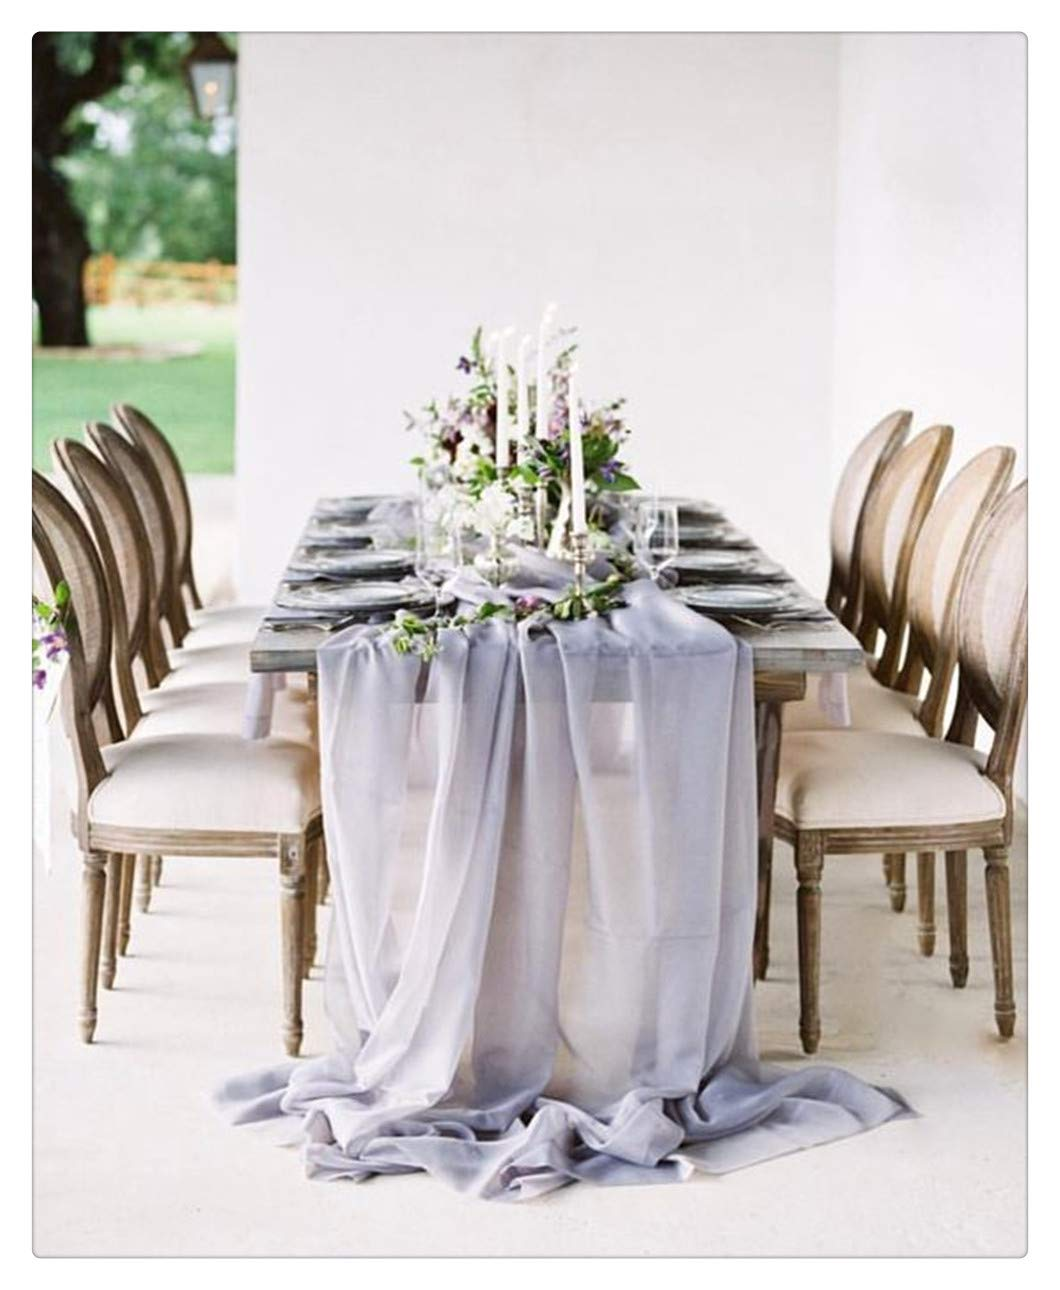 SoarDream 1 Piece Gray Chiffon Table Runners 27x120 inches Sheer Table Runner Wedding Reception Top Table Decoration